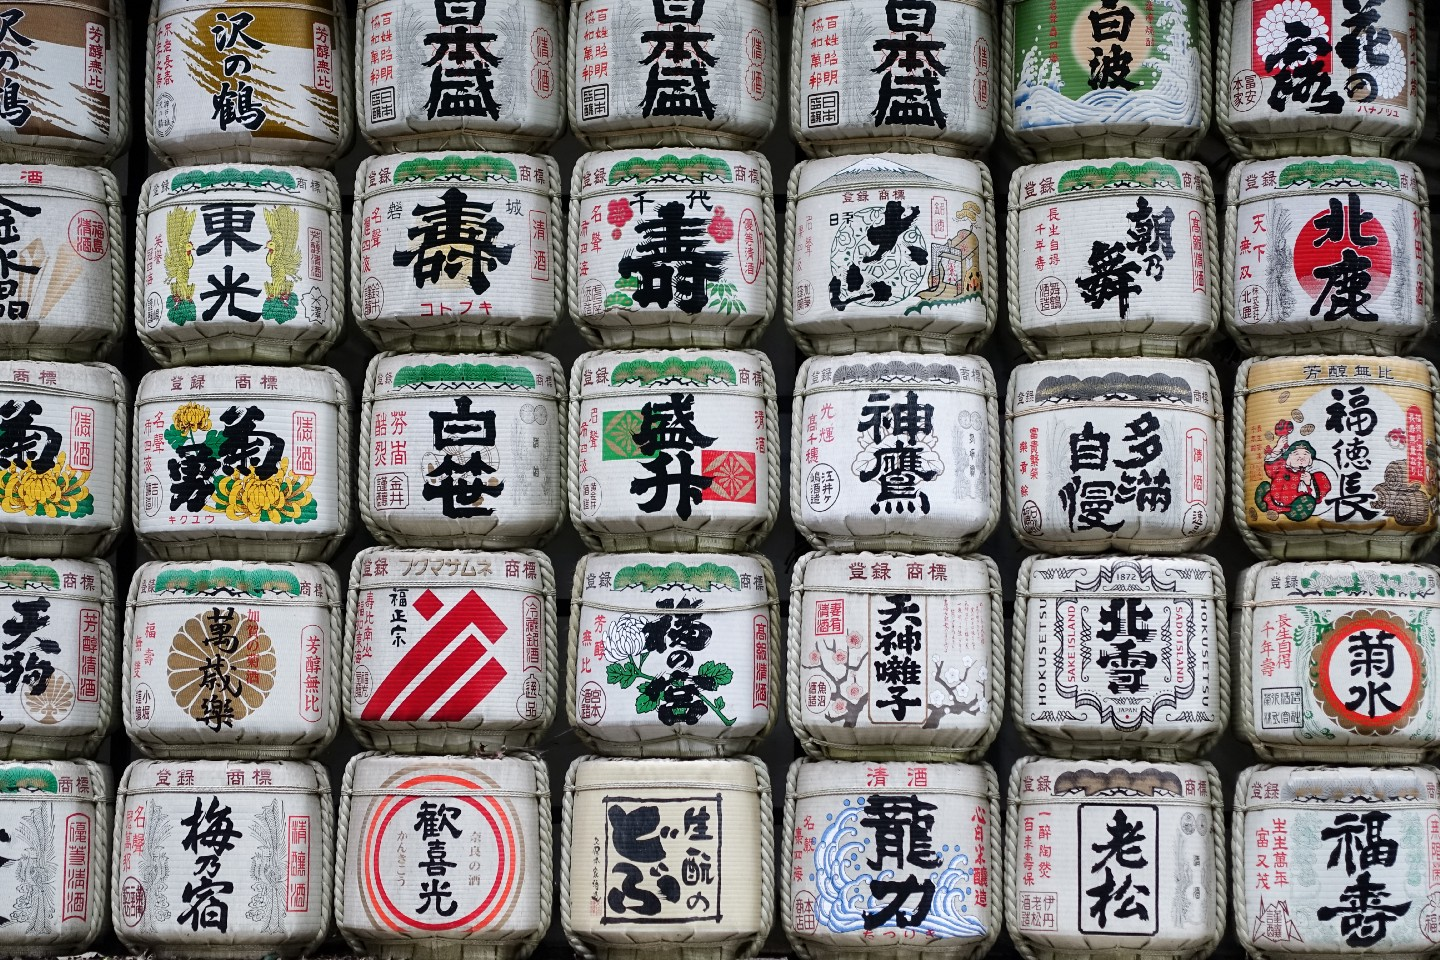 An expression of syntax, many symbols in what appears to be japanese tea cases